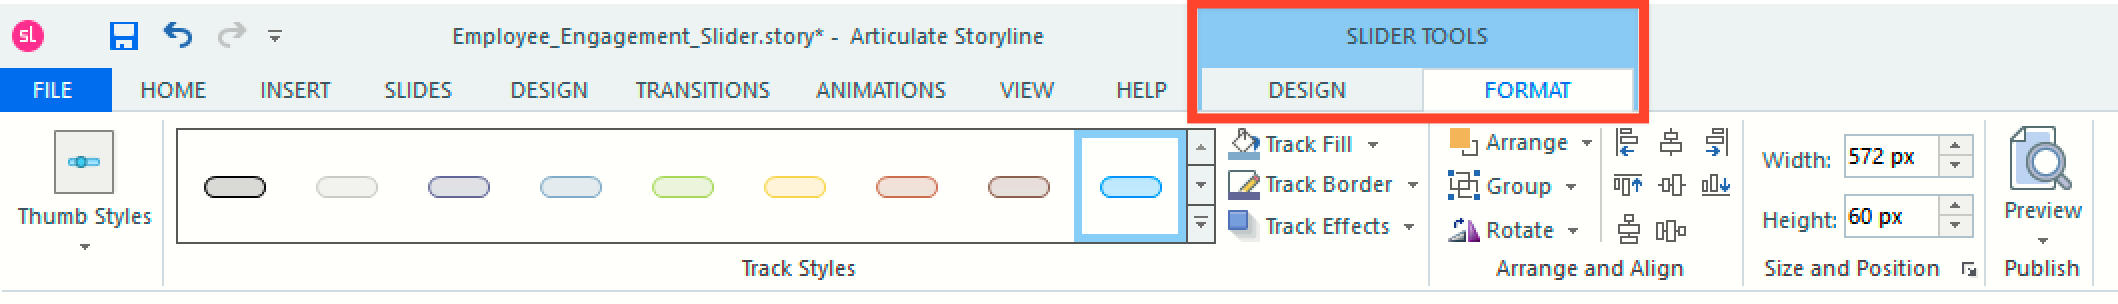 Slider Tools Tabs in Storyline 360